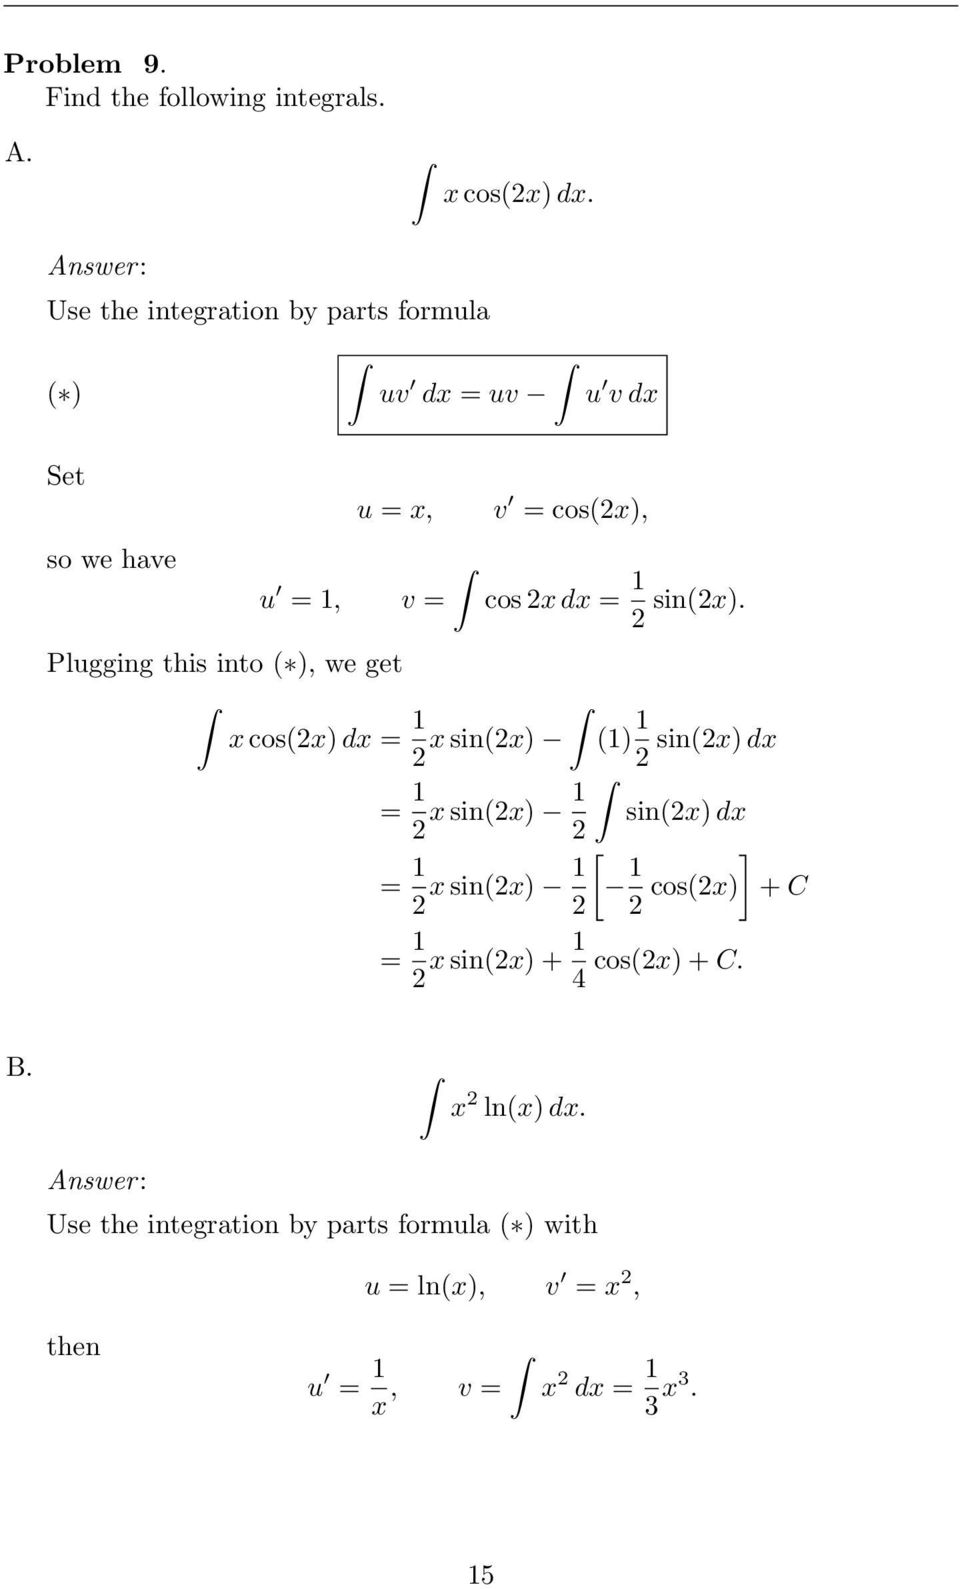 PROBLEM SET  Practice Problems for Exam #1  Math 1352, Fall